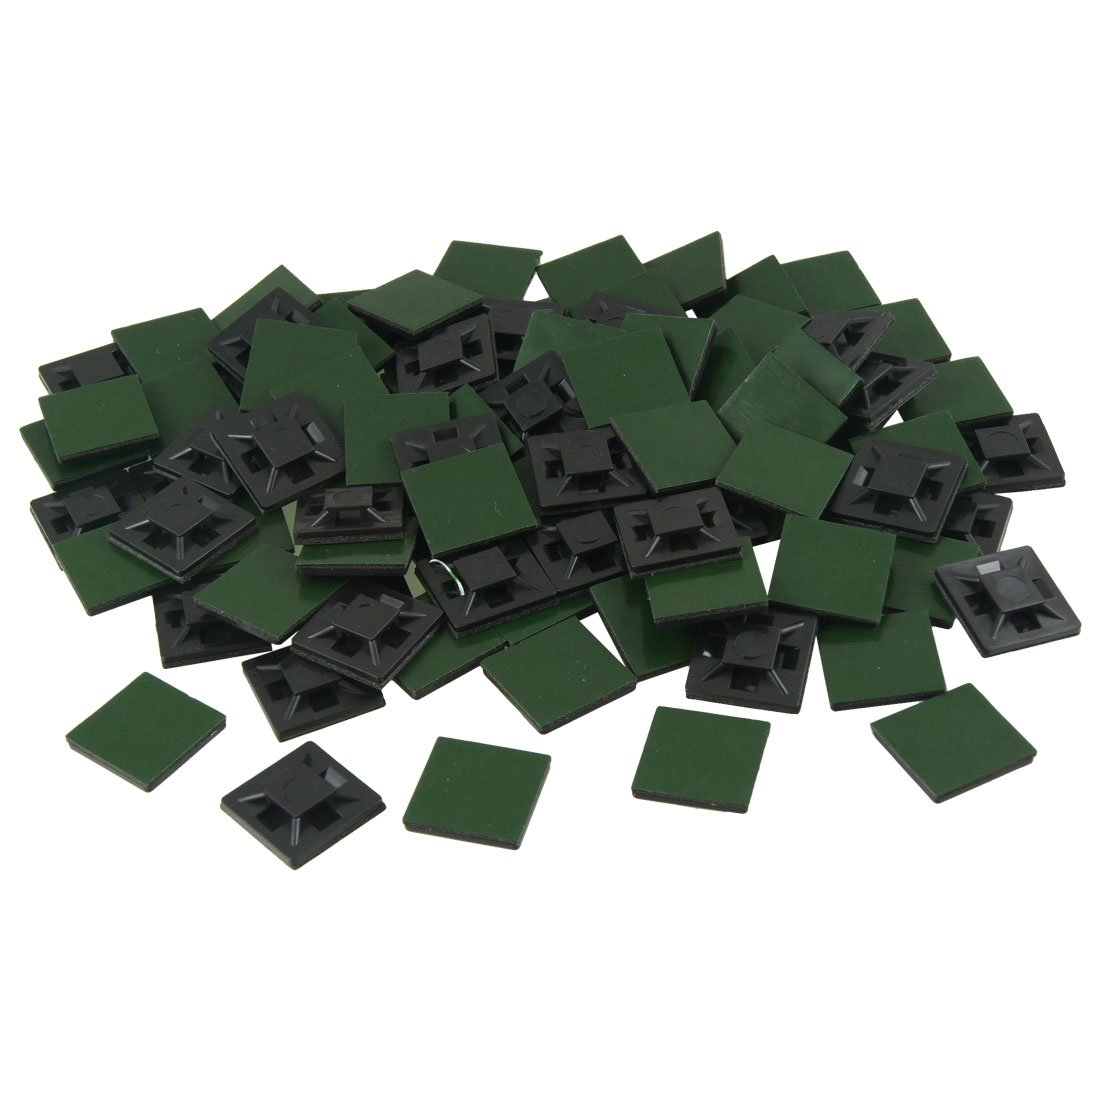 uxcell100 Pcs 20mm x 20mm x 4mm Self Adhesive Cable Tie Mount Base Holders Black a12102500ux0041